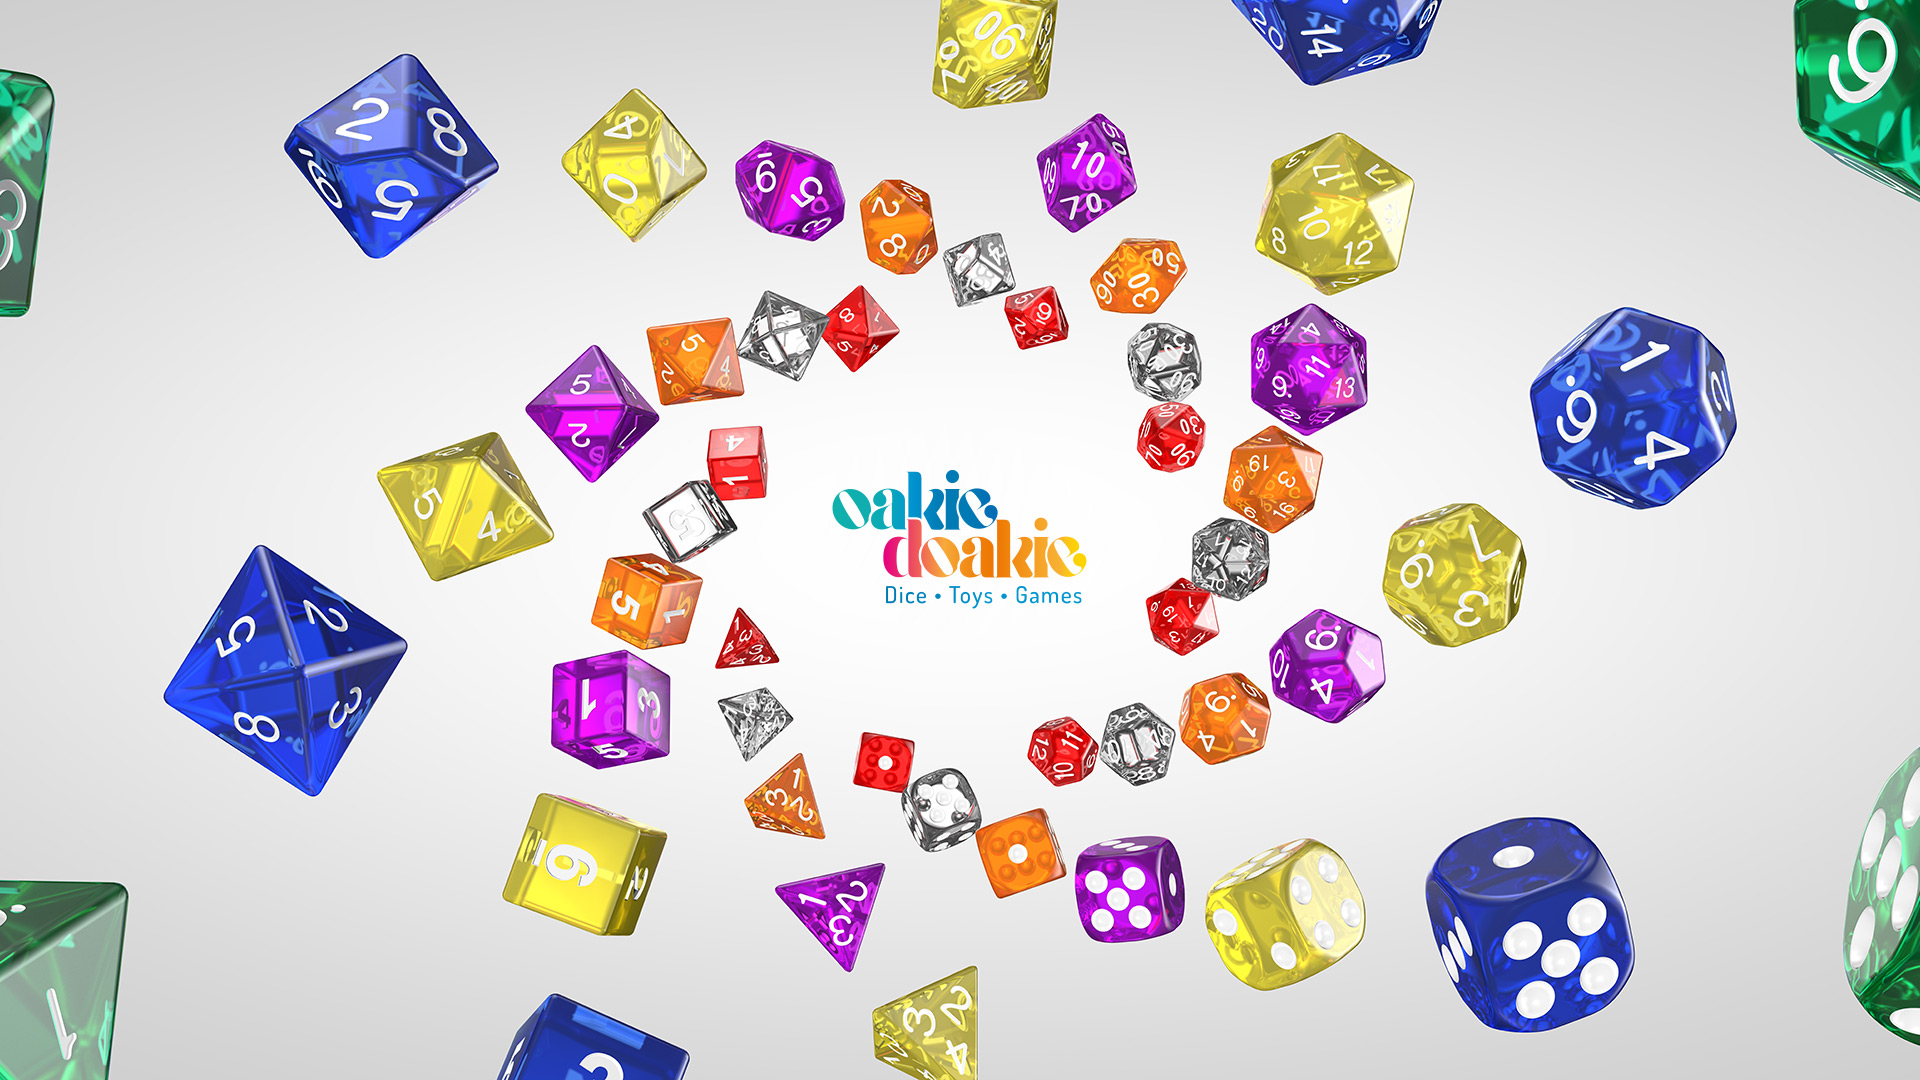 Oakie Doakie – Dice, Toys, Game